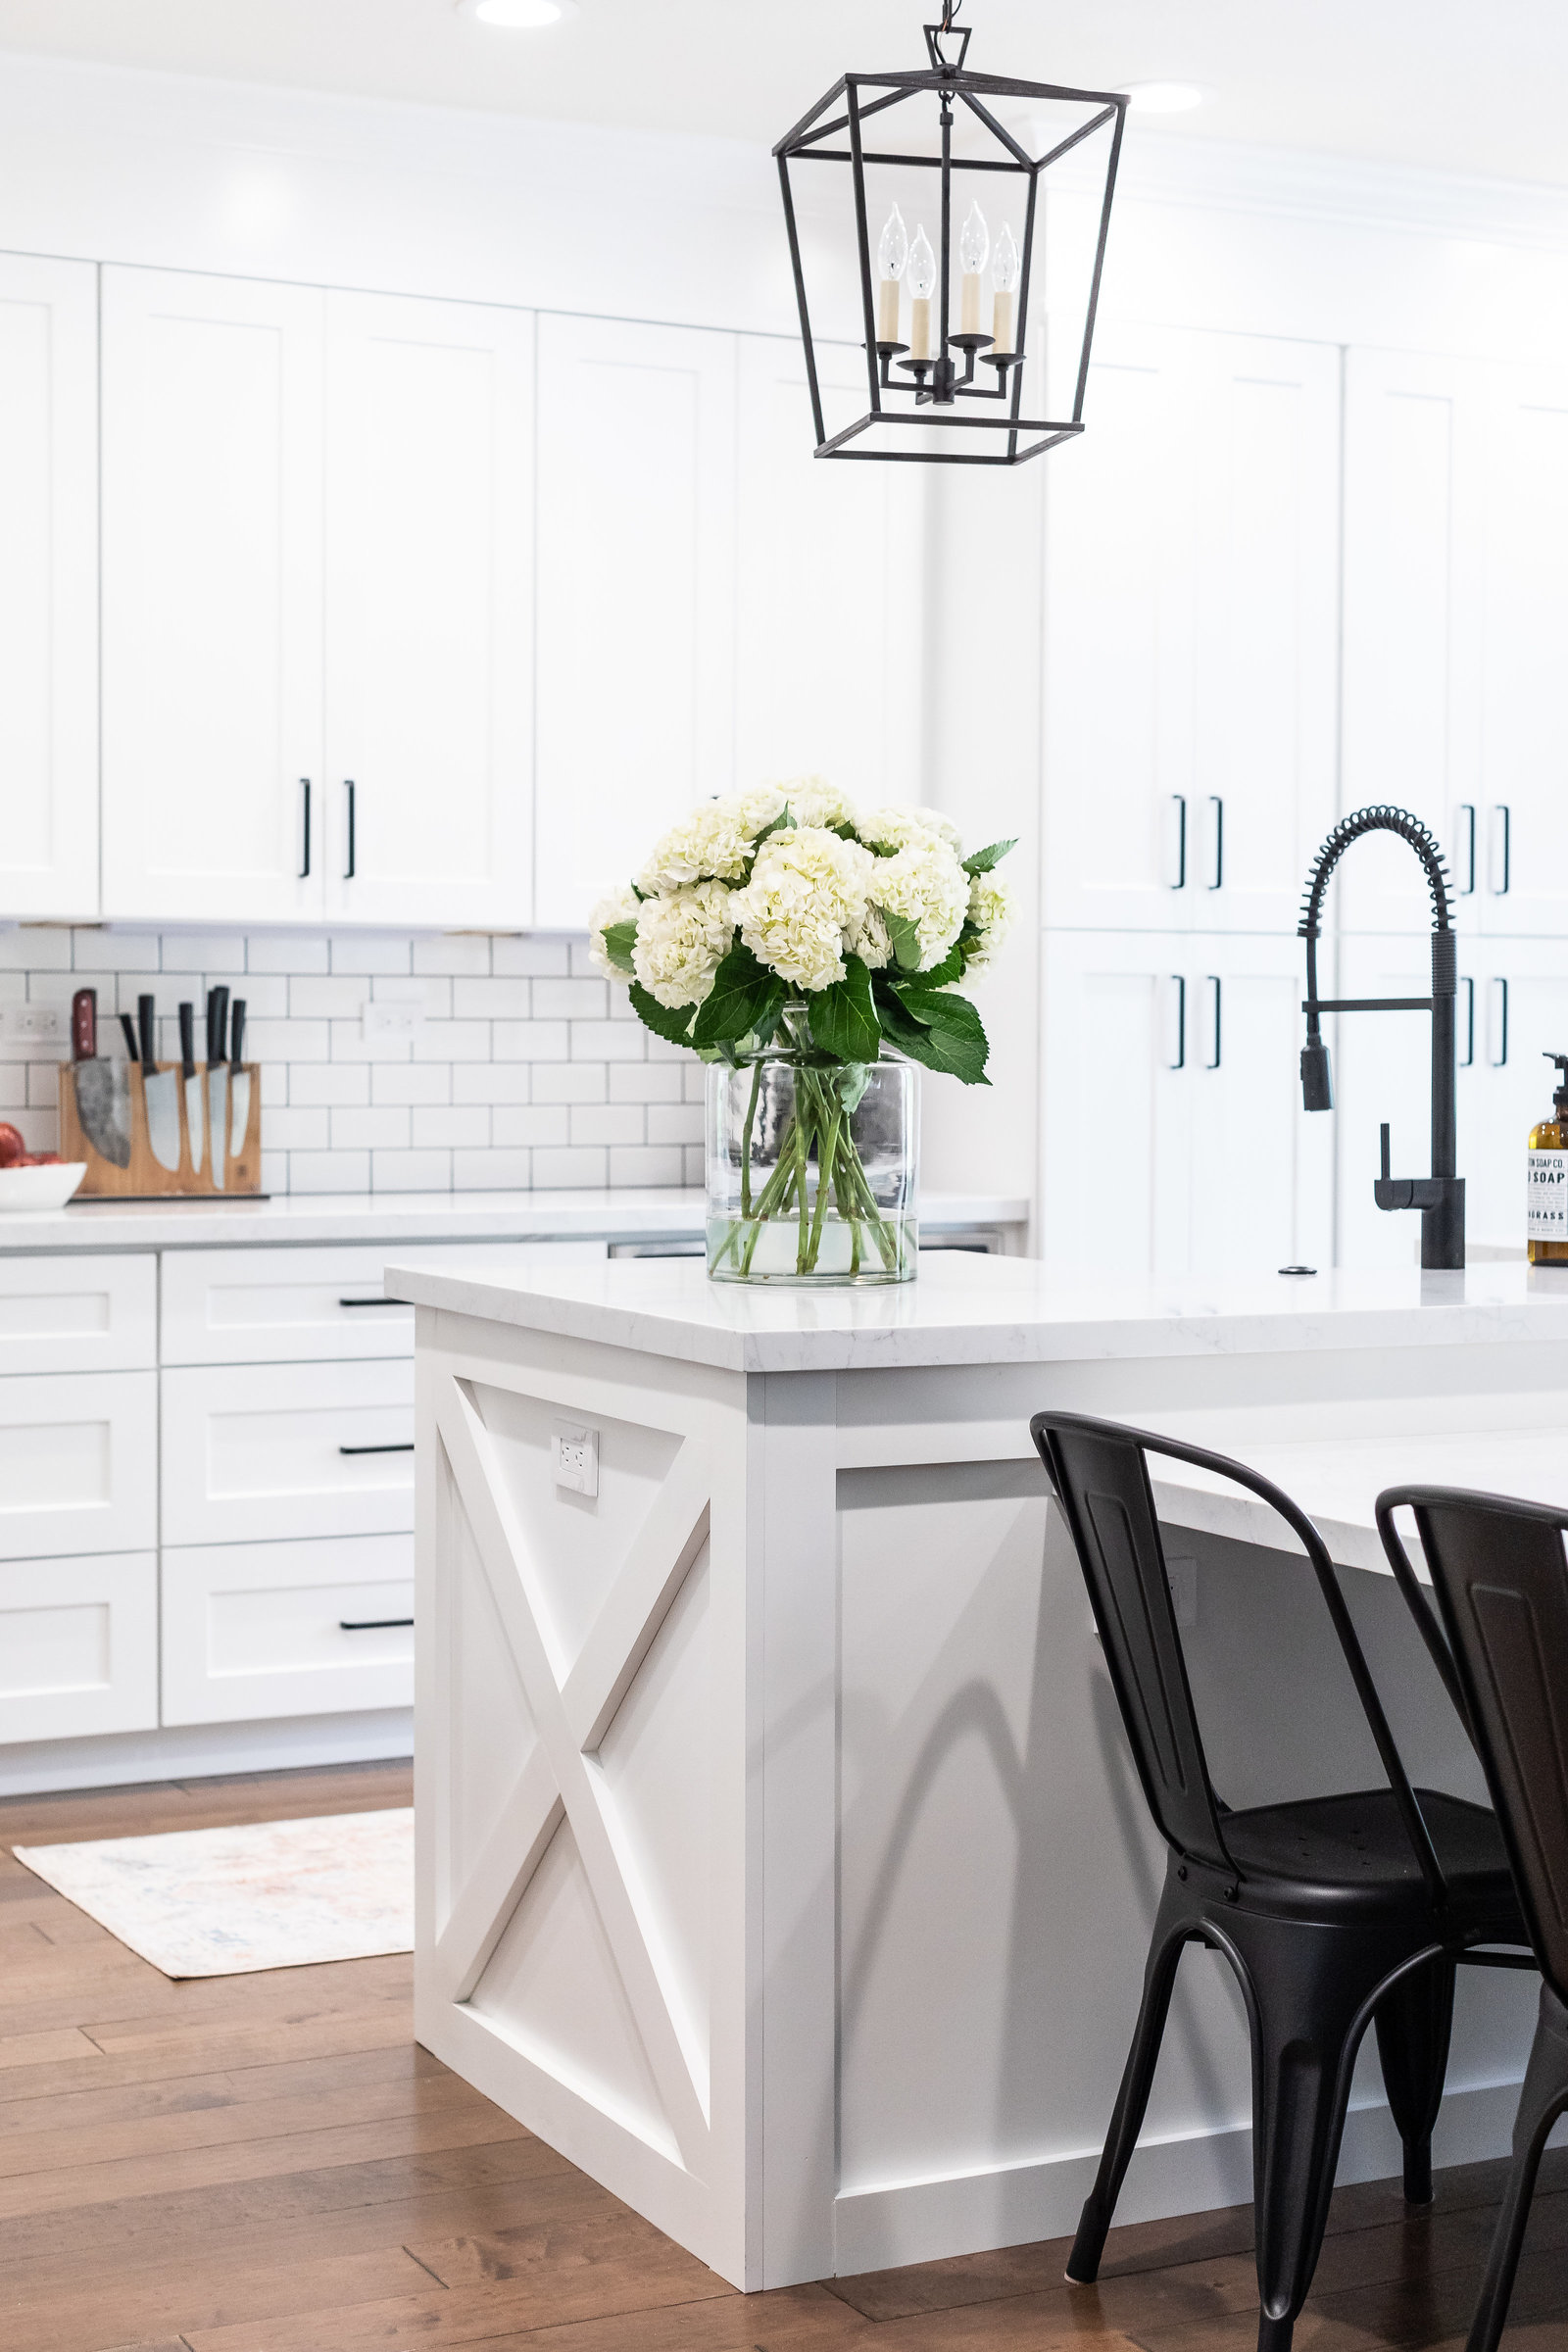 Marlene_kitchen_interior_design_4-11-19-36